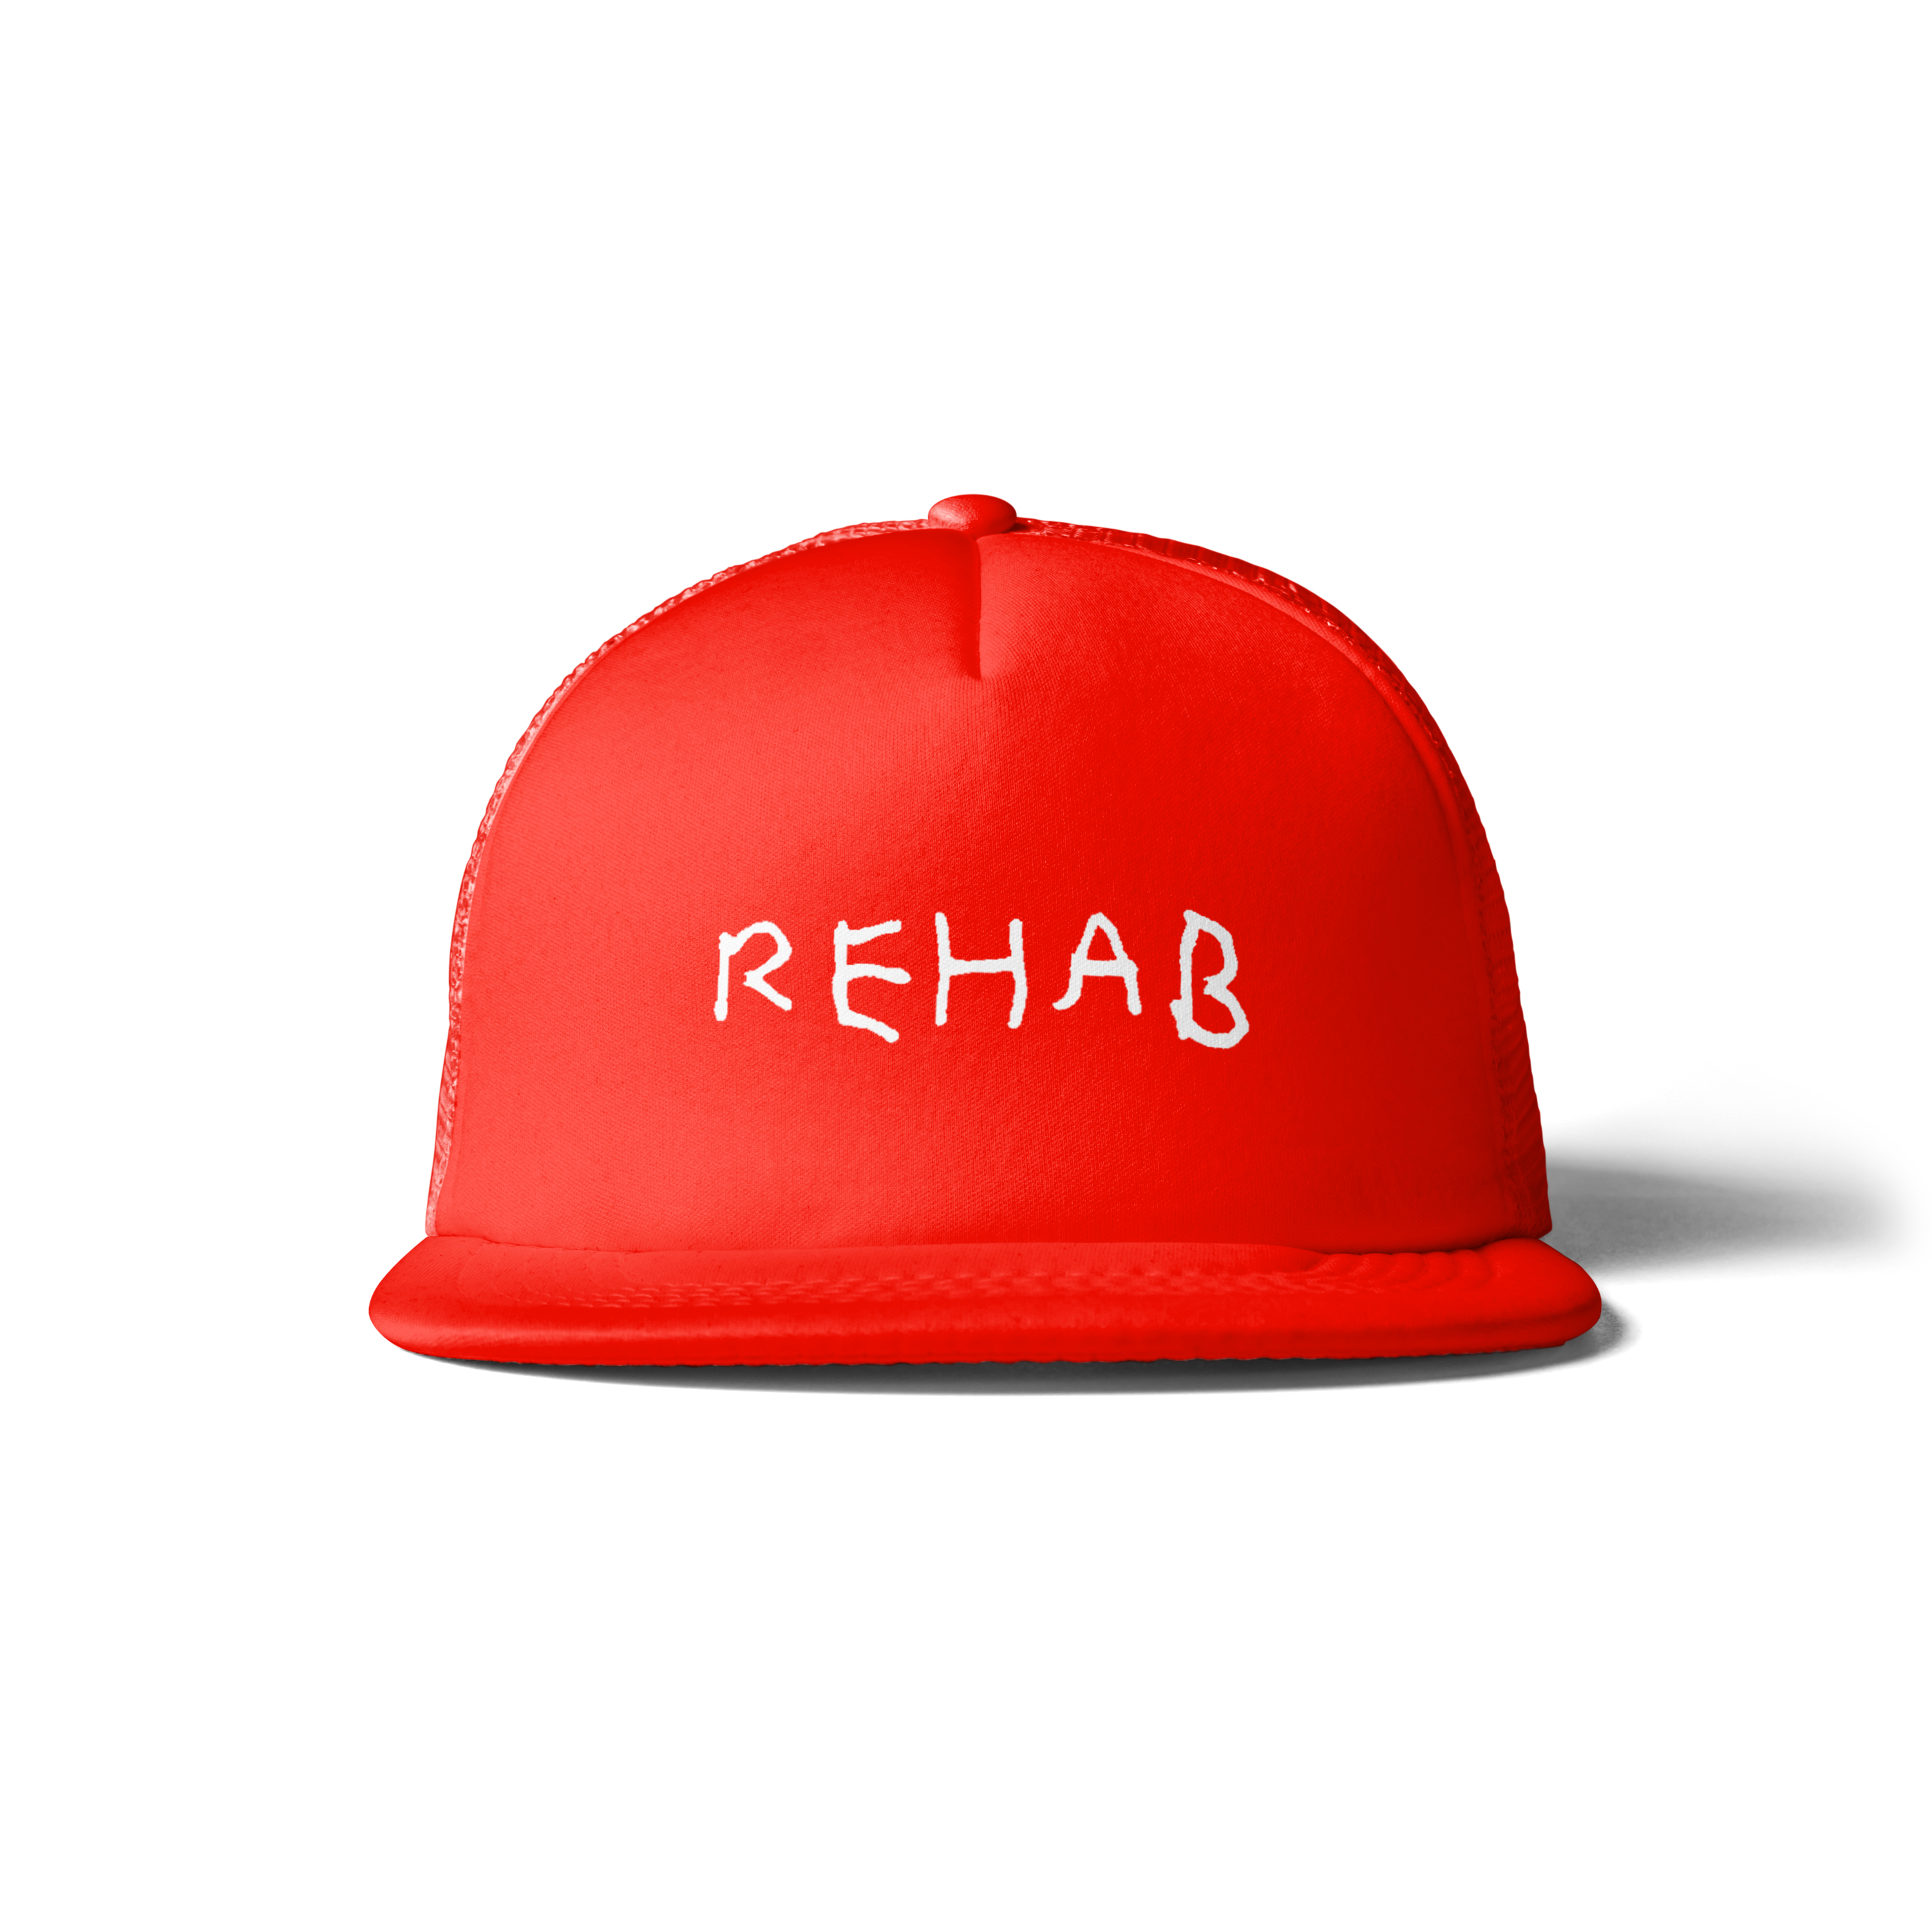 Rehab Red Hat